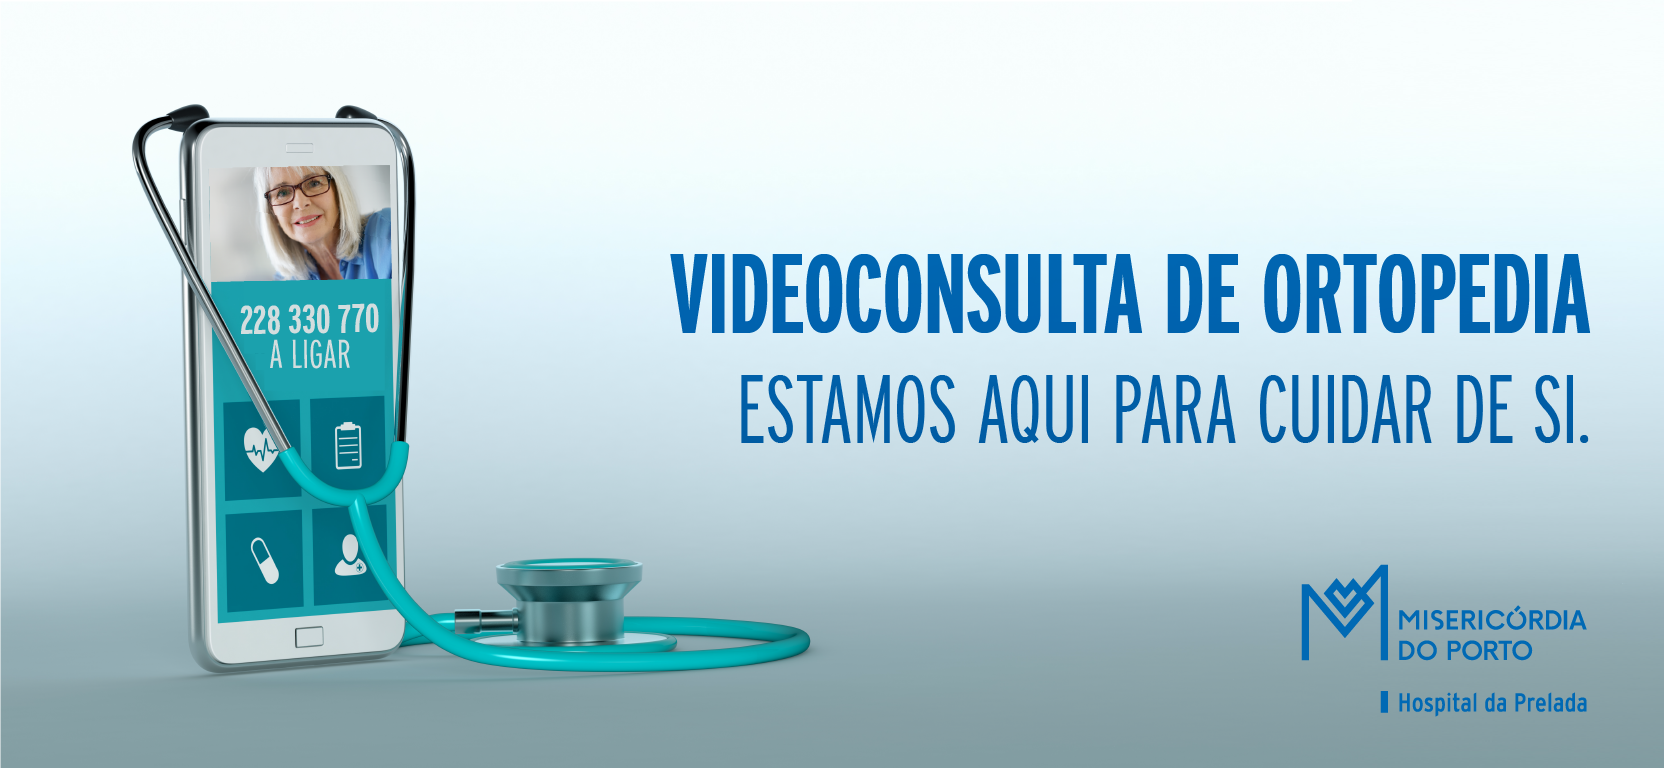 https://www.scmp.pt/assets/misc/img/2020/2020-04-30%20HP/HP%20videoconsulta%20especialidades_banner%20site.png